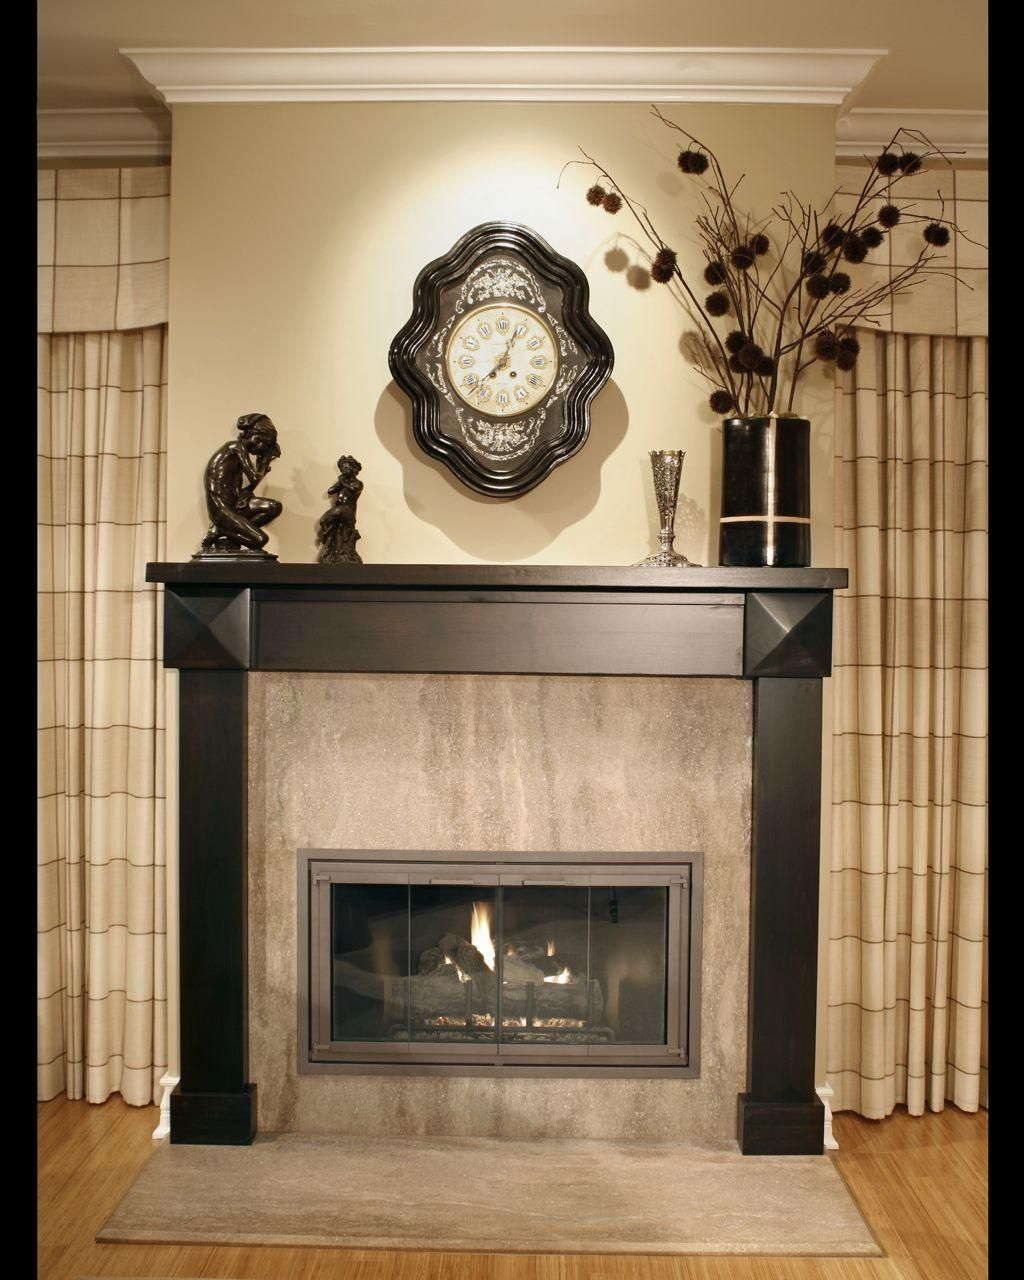 Captivating Wall Mounted Fireplace Ideas Beautiful Wall